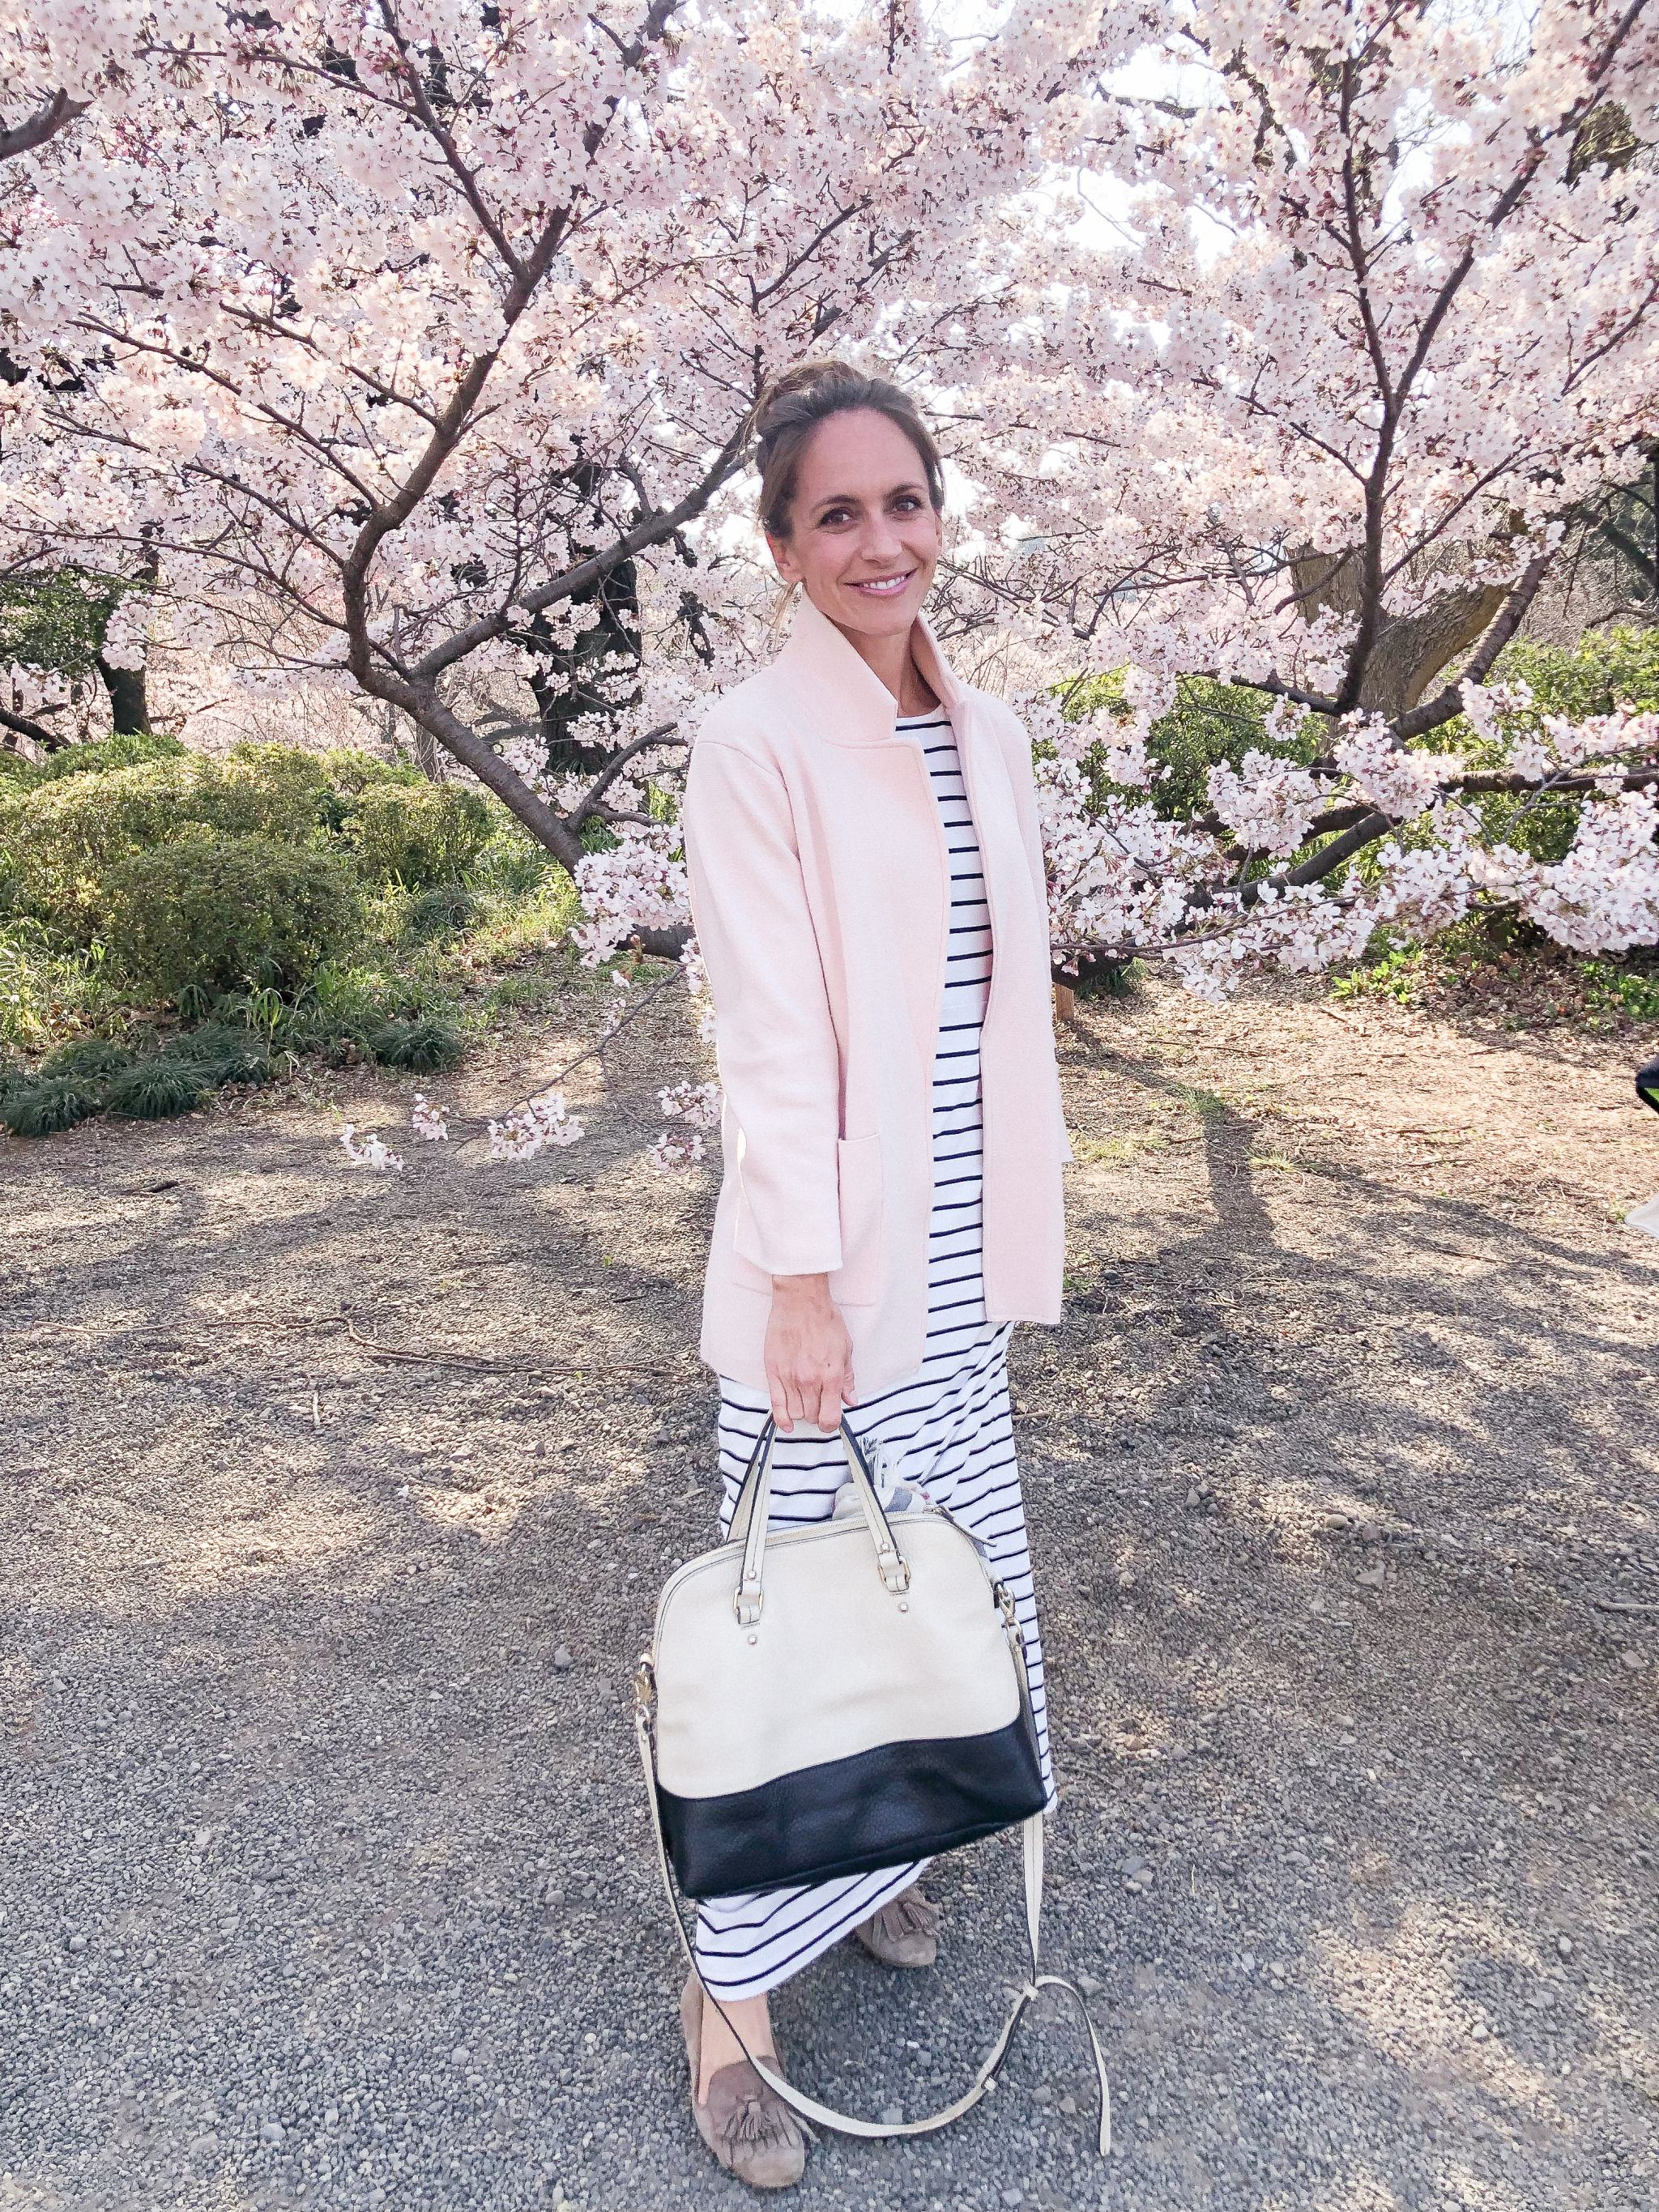 Shinjuku Gyoen National Garden - sakura Tokyo - cherry blossoms in Tokyo - best place to see cherry blossoms in Tokyo - spring in Tokyo - striped dress - sweater blazer - travel outfit - loafers with dress - burberry scarf - sightseeing in Tokyo